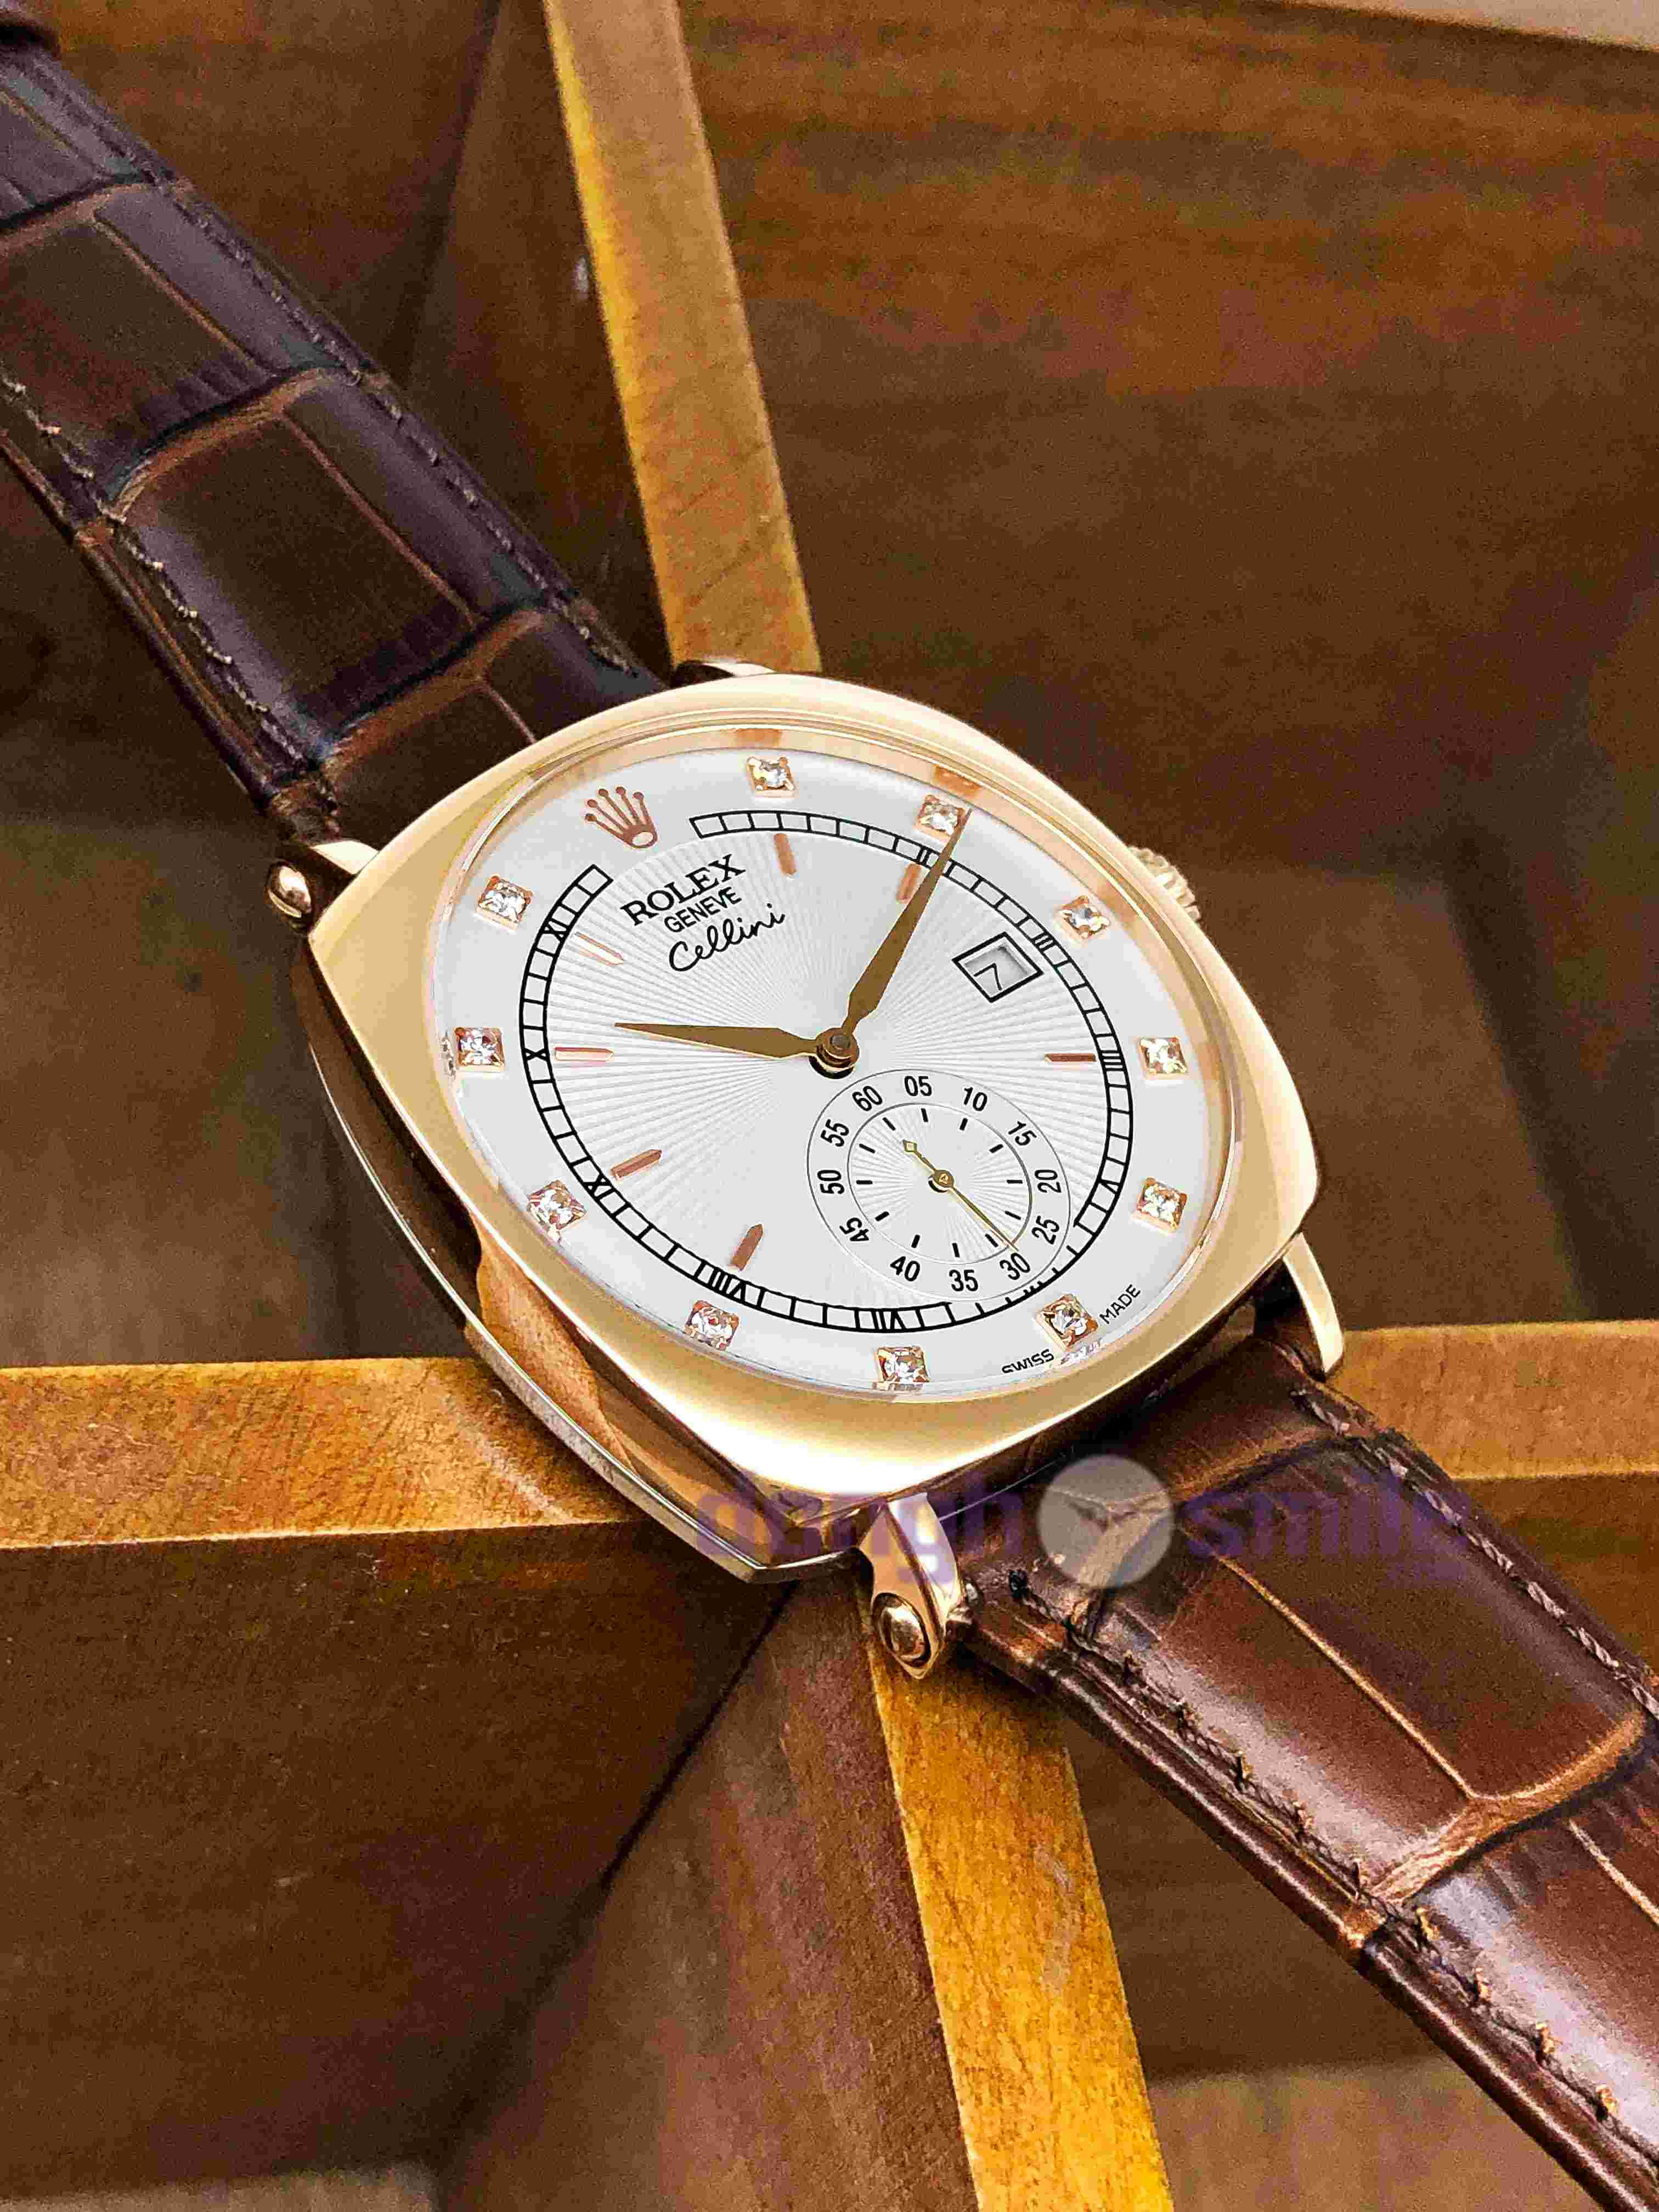 dong-ho-rolex-cellini-nam-may-tu-dong-a-rl05-02